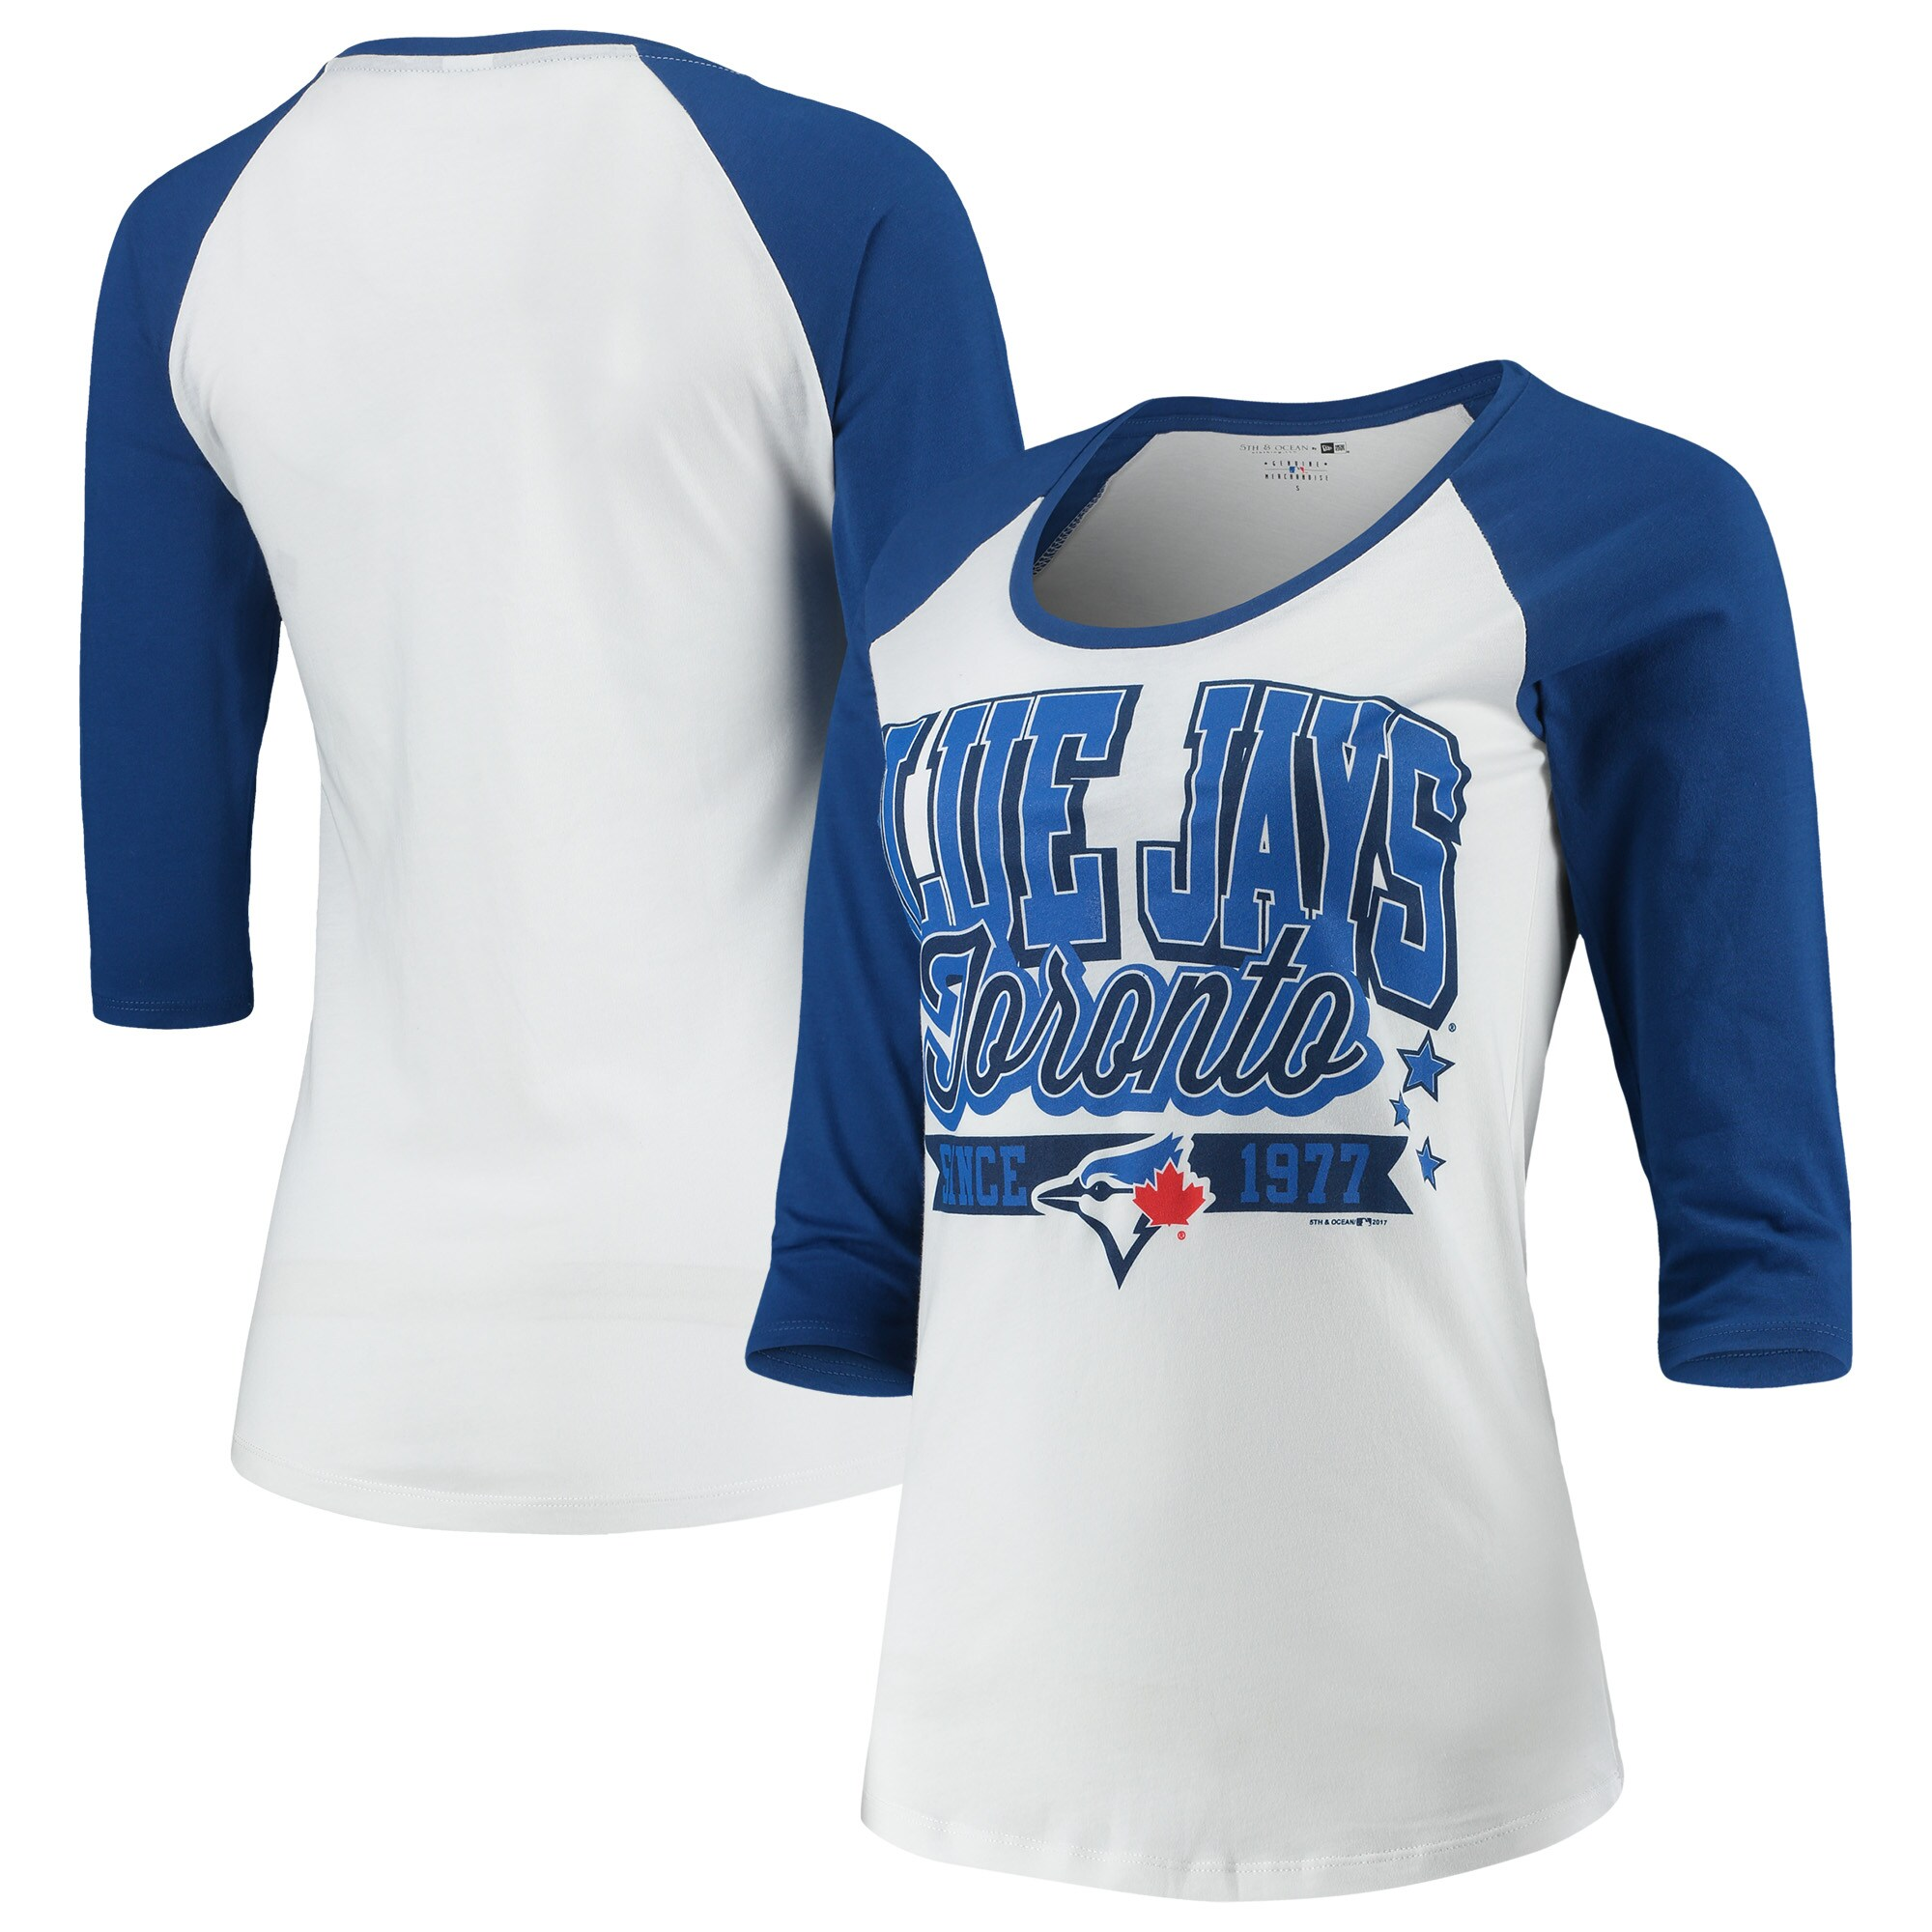 Toronto Blue Jays 5th & Ocean by New Era Women's Team Banner 3/4-Sleeve Raglan T-Shirt - White/Royal